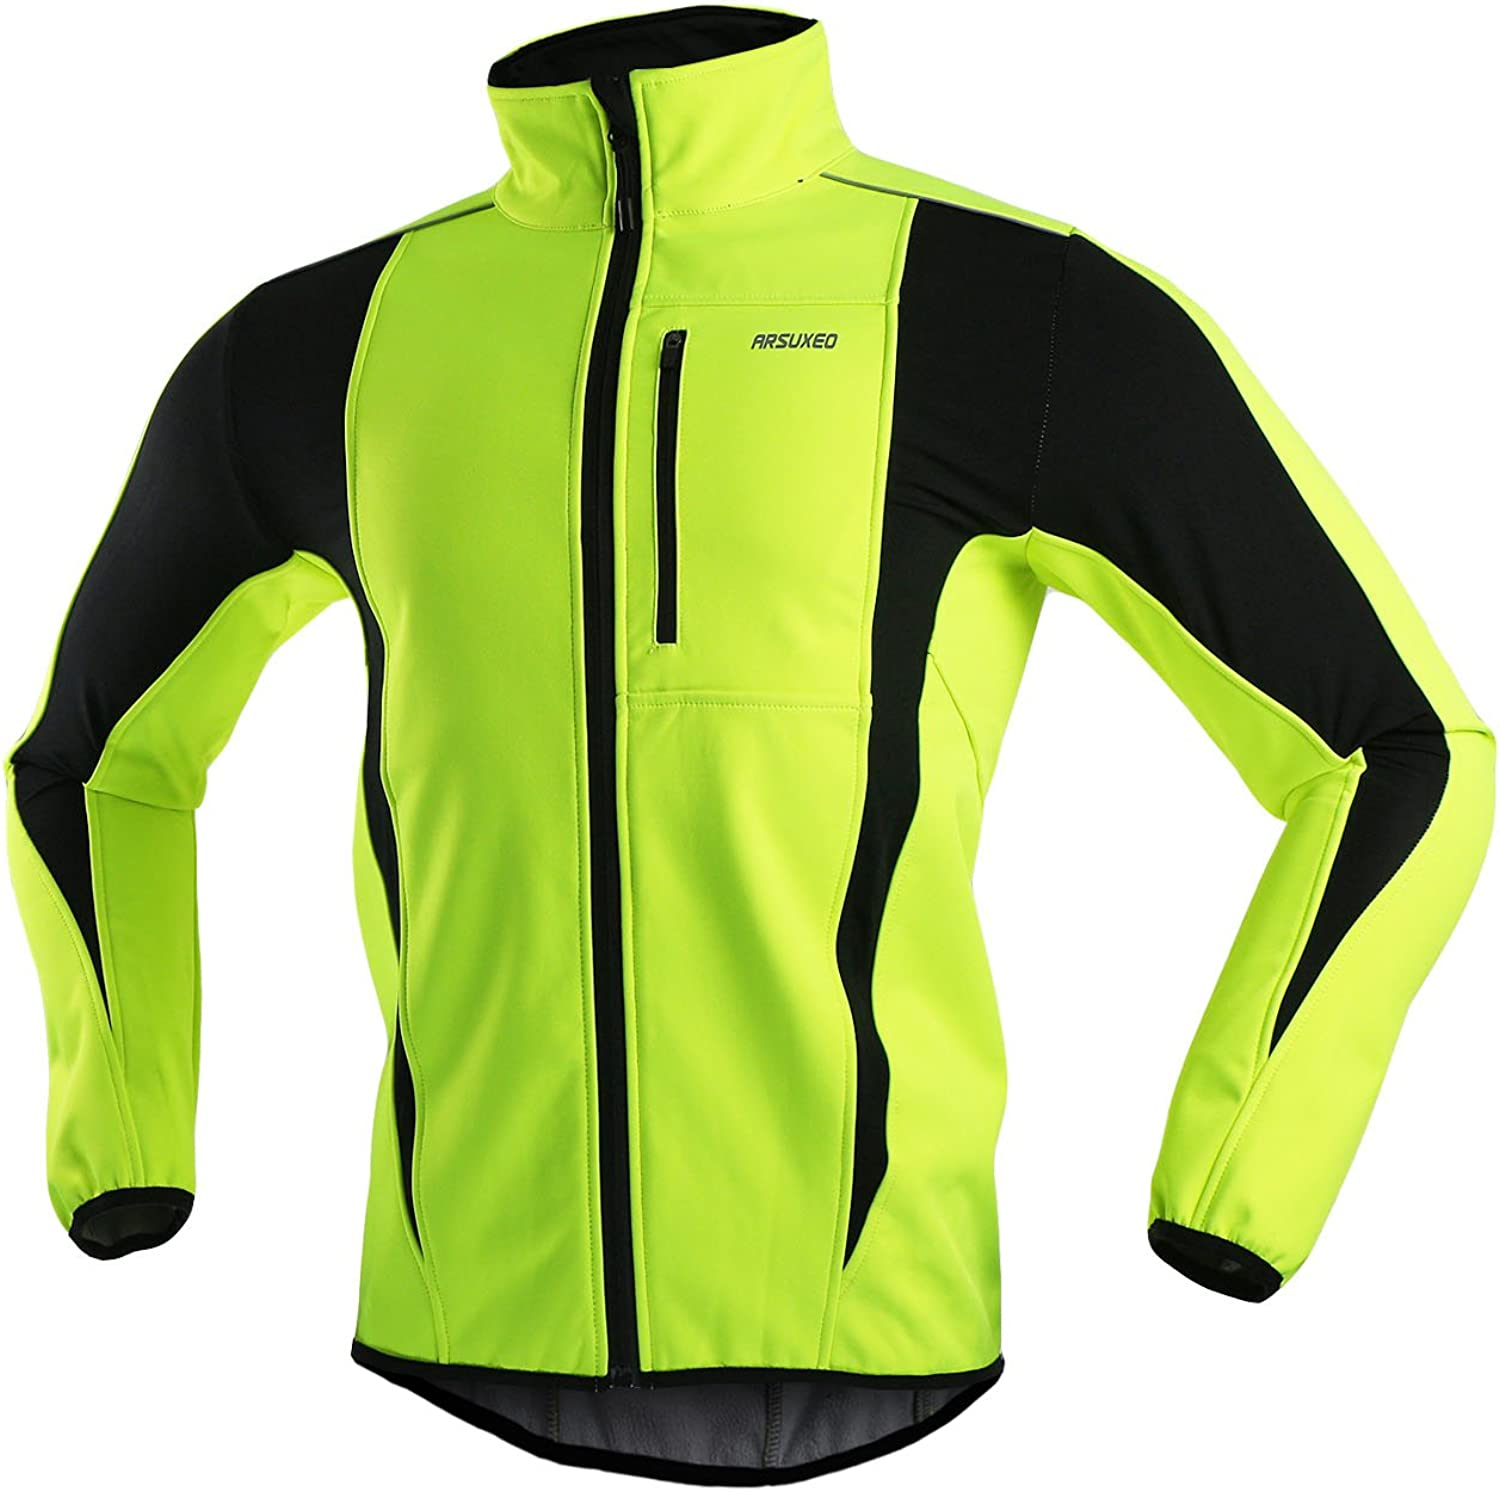 ARSUXEO Winter Warm UP Thermal Softshell Cycling Jacket Windproof Waterproof 15-k: Clothing